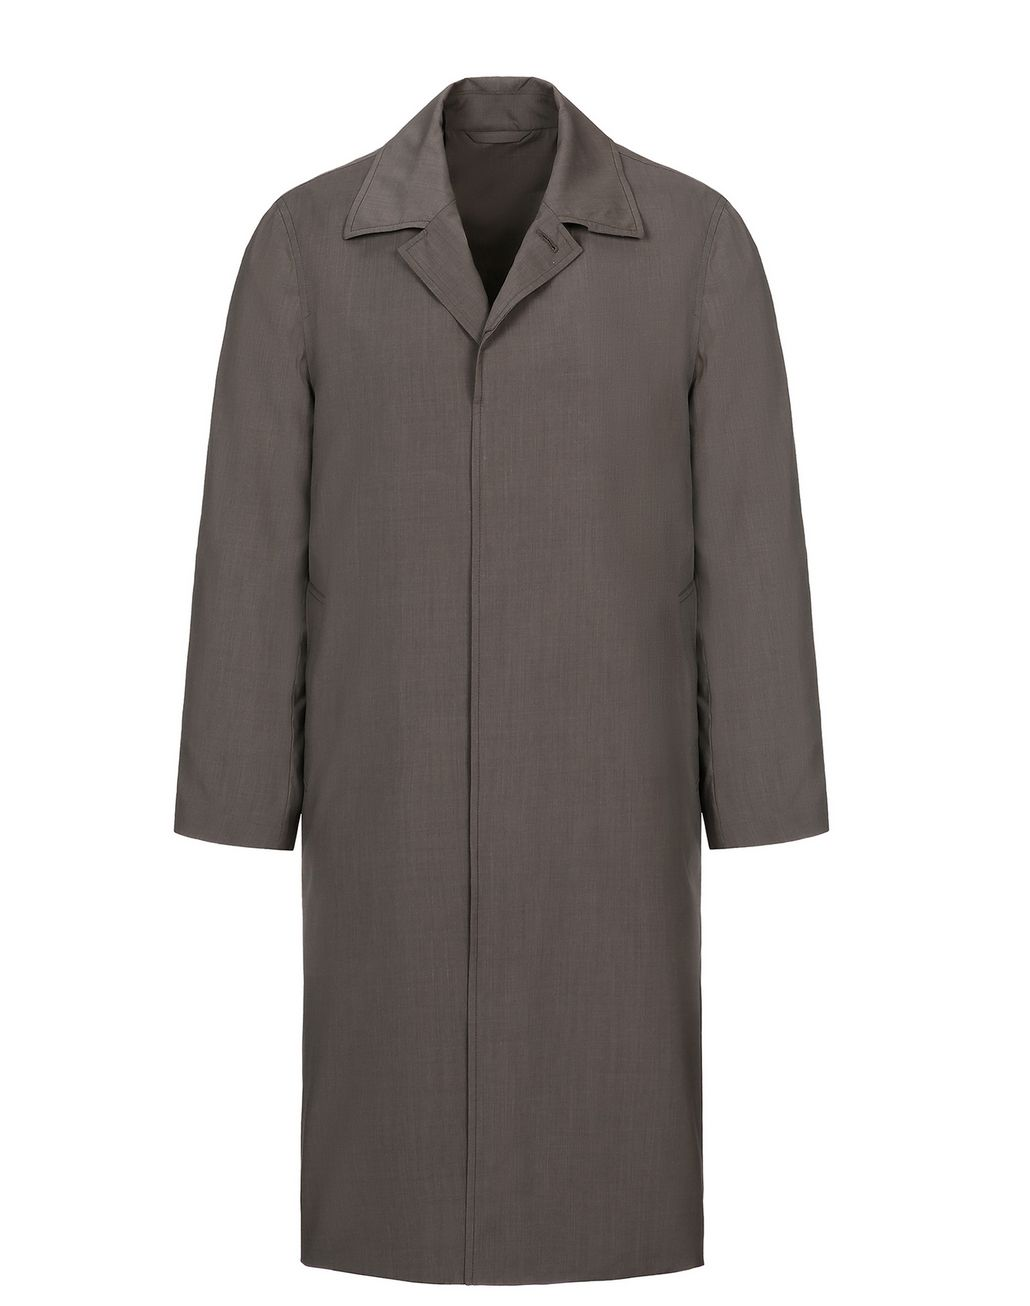 BRIONI Trench imperméable en laine et soie marron Manteau [*** pickupInStoreShippingNotGuaranteed_info ***] f